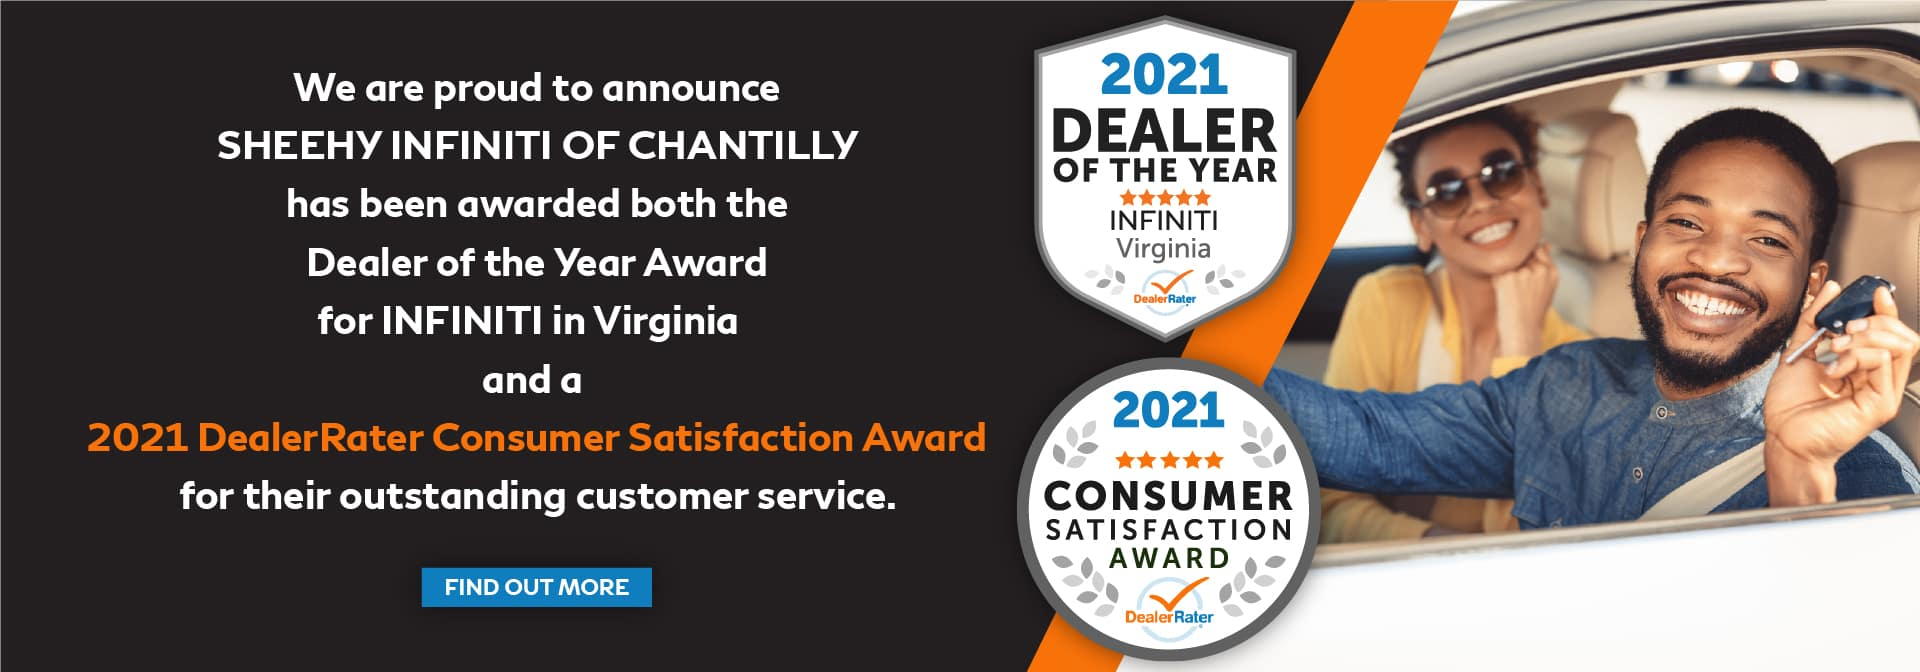 CH-JAN2021-dealerrater-award-1920×672-webslider-2